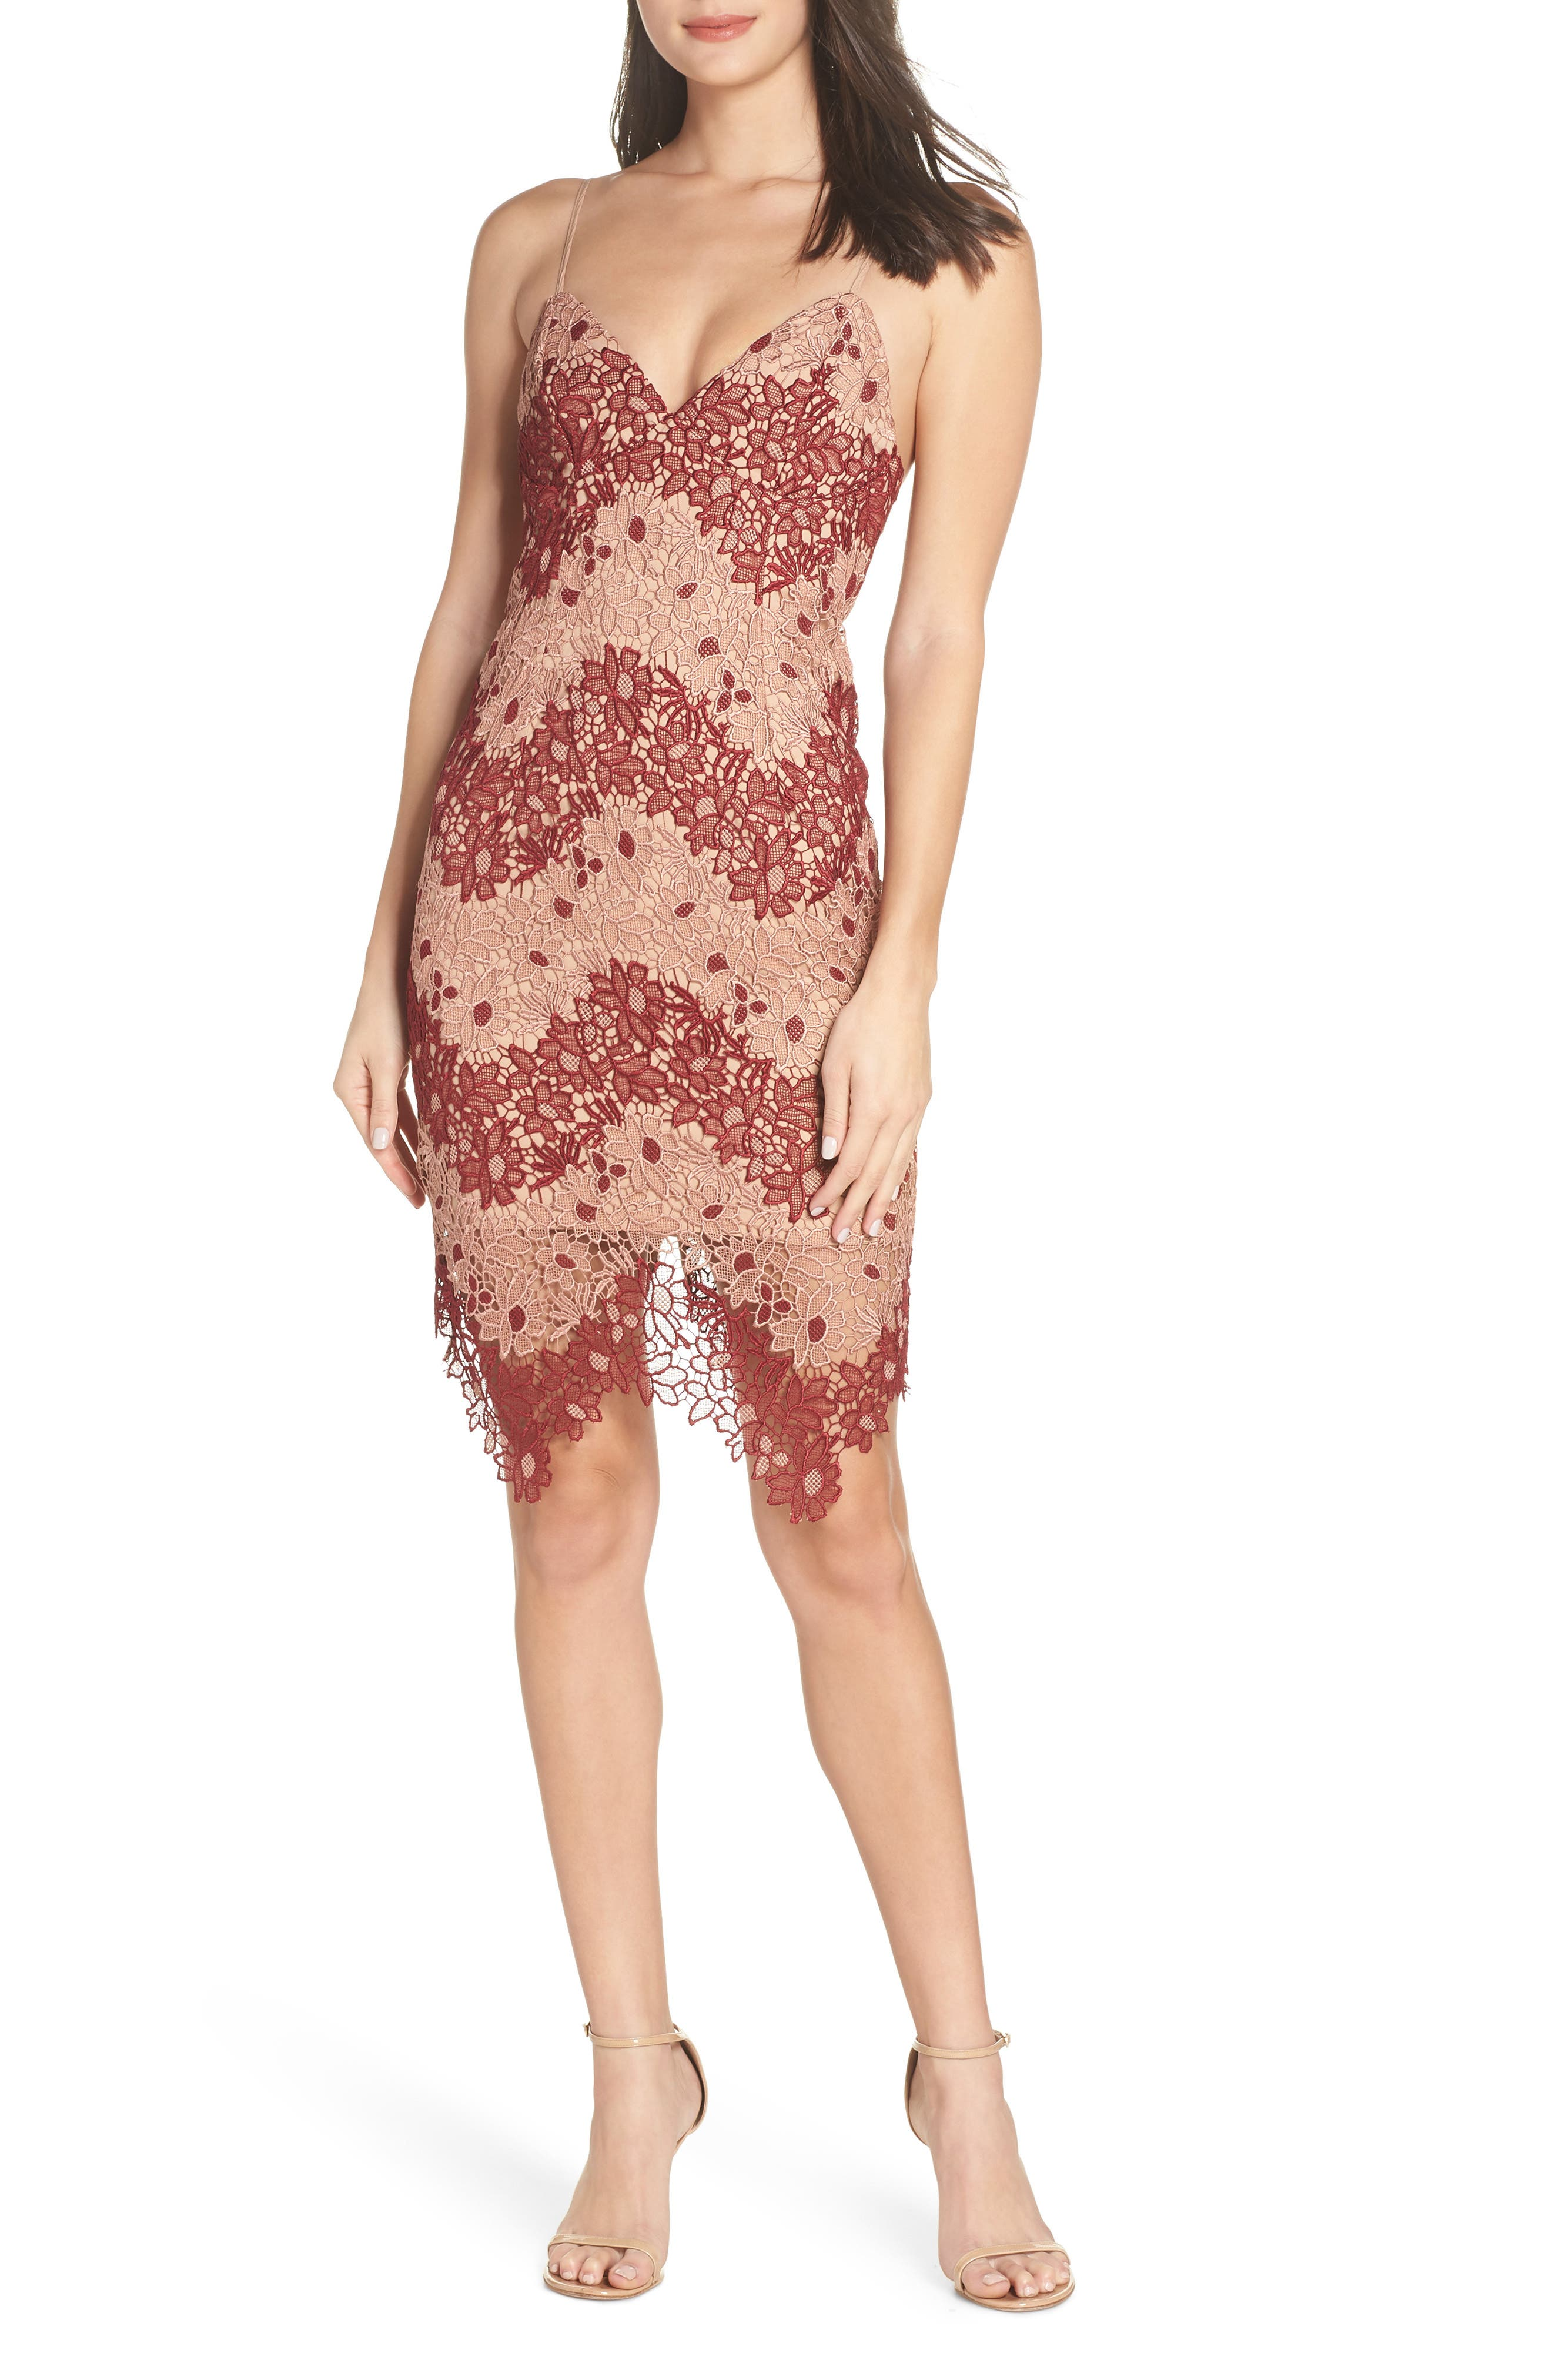 Bardot Two-Tone Lace Dress, Beige